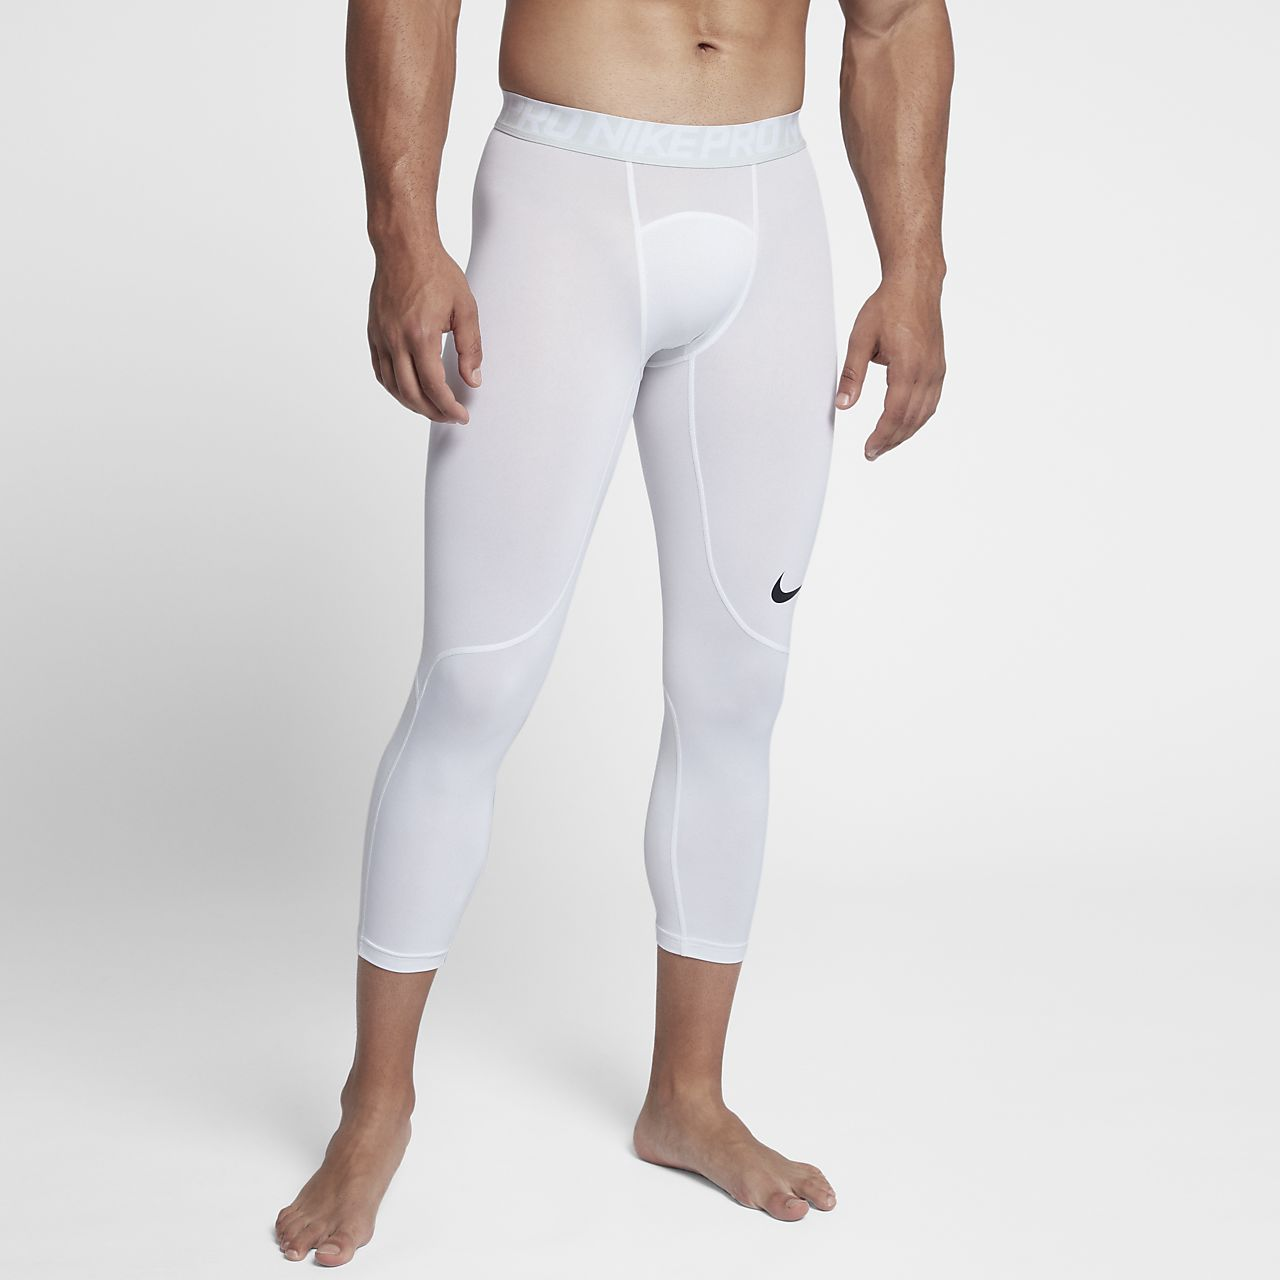 c6adb5e2ea4d6 Nike Pro Men's 3/4 Training Tights. Nike.com